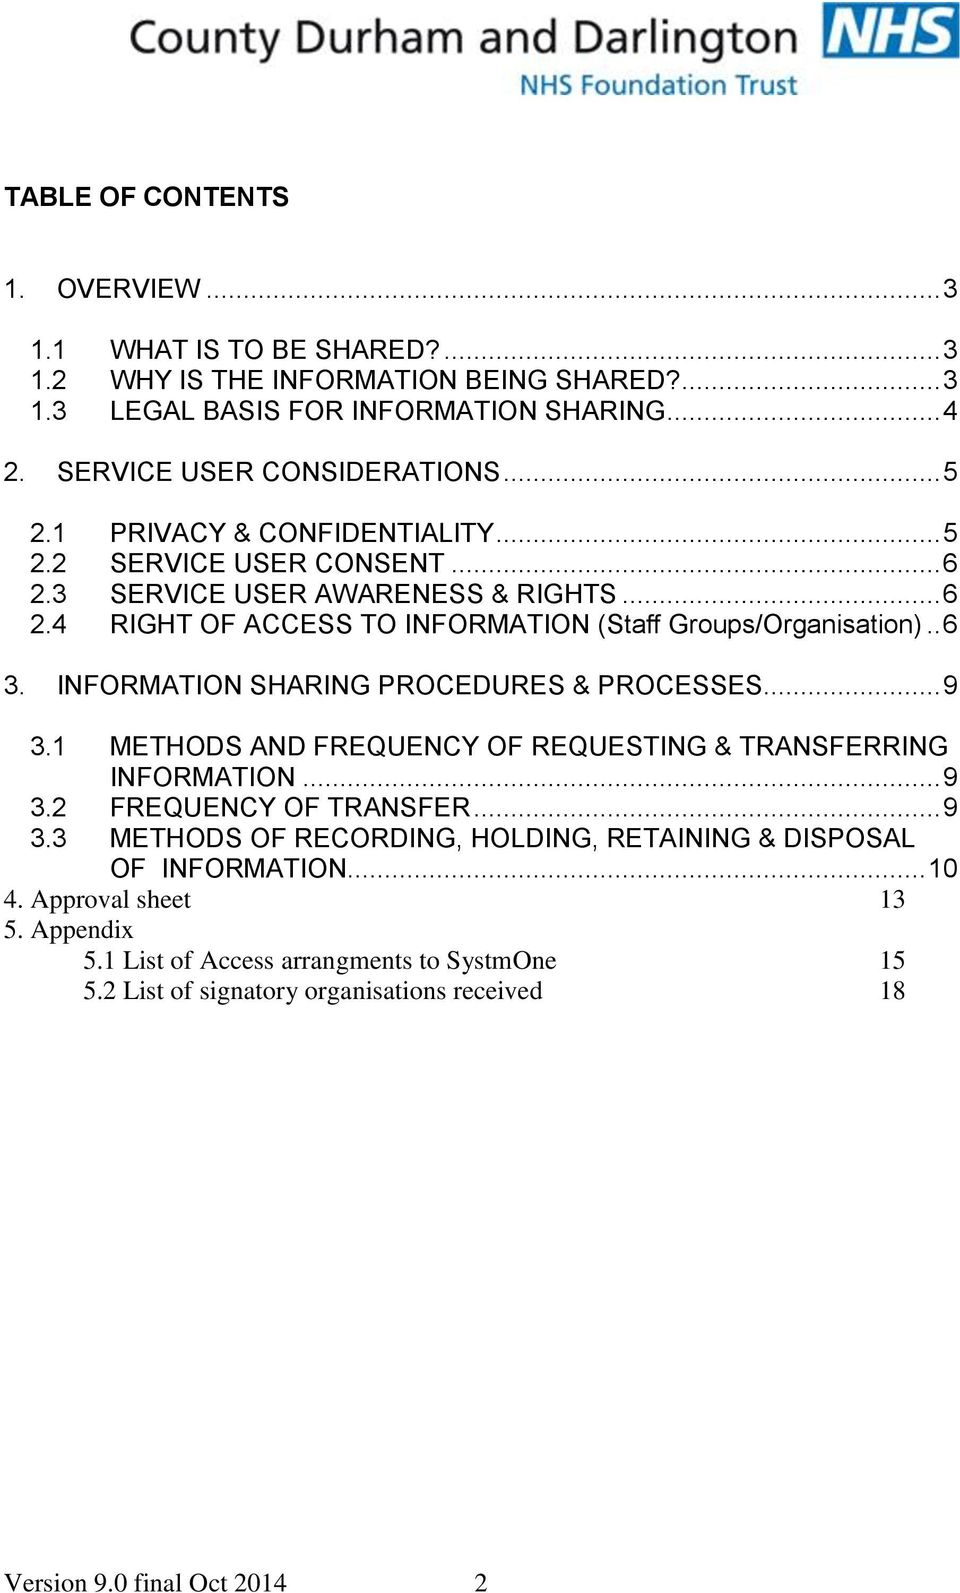 INFORMATION SHARING PROCEDURES & PROCESSES... 9 3.1 METHODS AND FREQUENCY OF REQUESTING & TRANSFERRING INFORMATION... 9 3.2 FREQUENCY OF TRANSFER... 9 3.3 METHODS OF RECORDING, HOLDING, RETAINING & DISPOSAL OF INFORMATION.